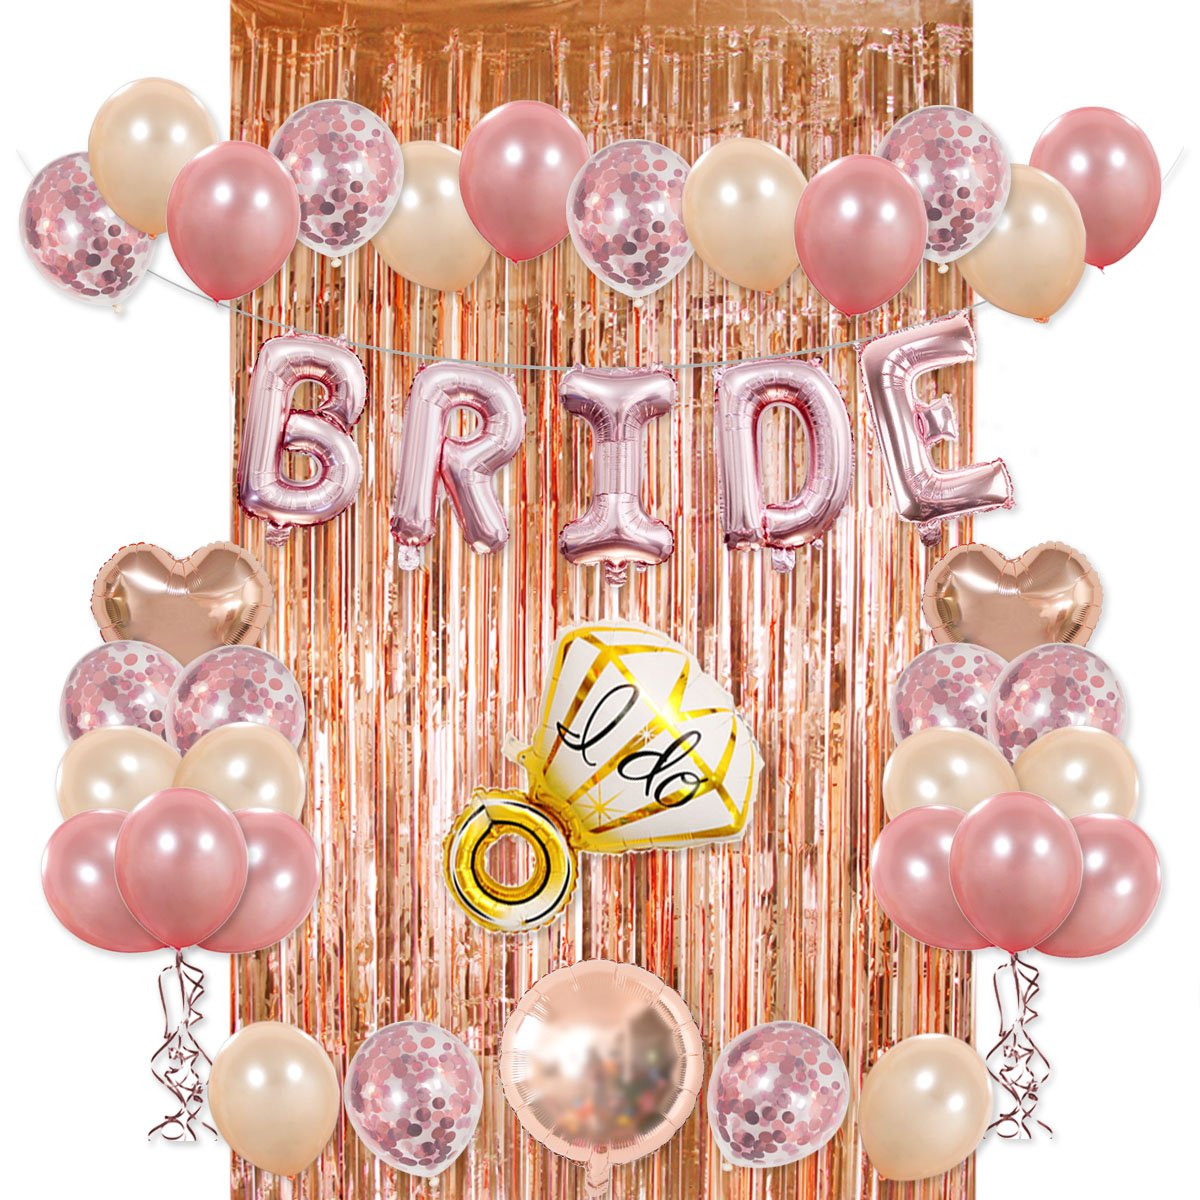 Bride Party Decorations Kit- Rose Gold Foil Fringe Curtain, 20 Latex Balloons, 10 Confetti Balloon, Bride and Ring Heart Round Mylar Balloons for Bachelorette Bridal Shower Party Supplies by Haptda